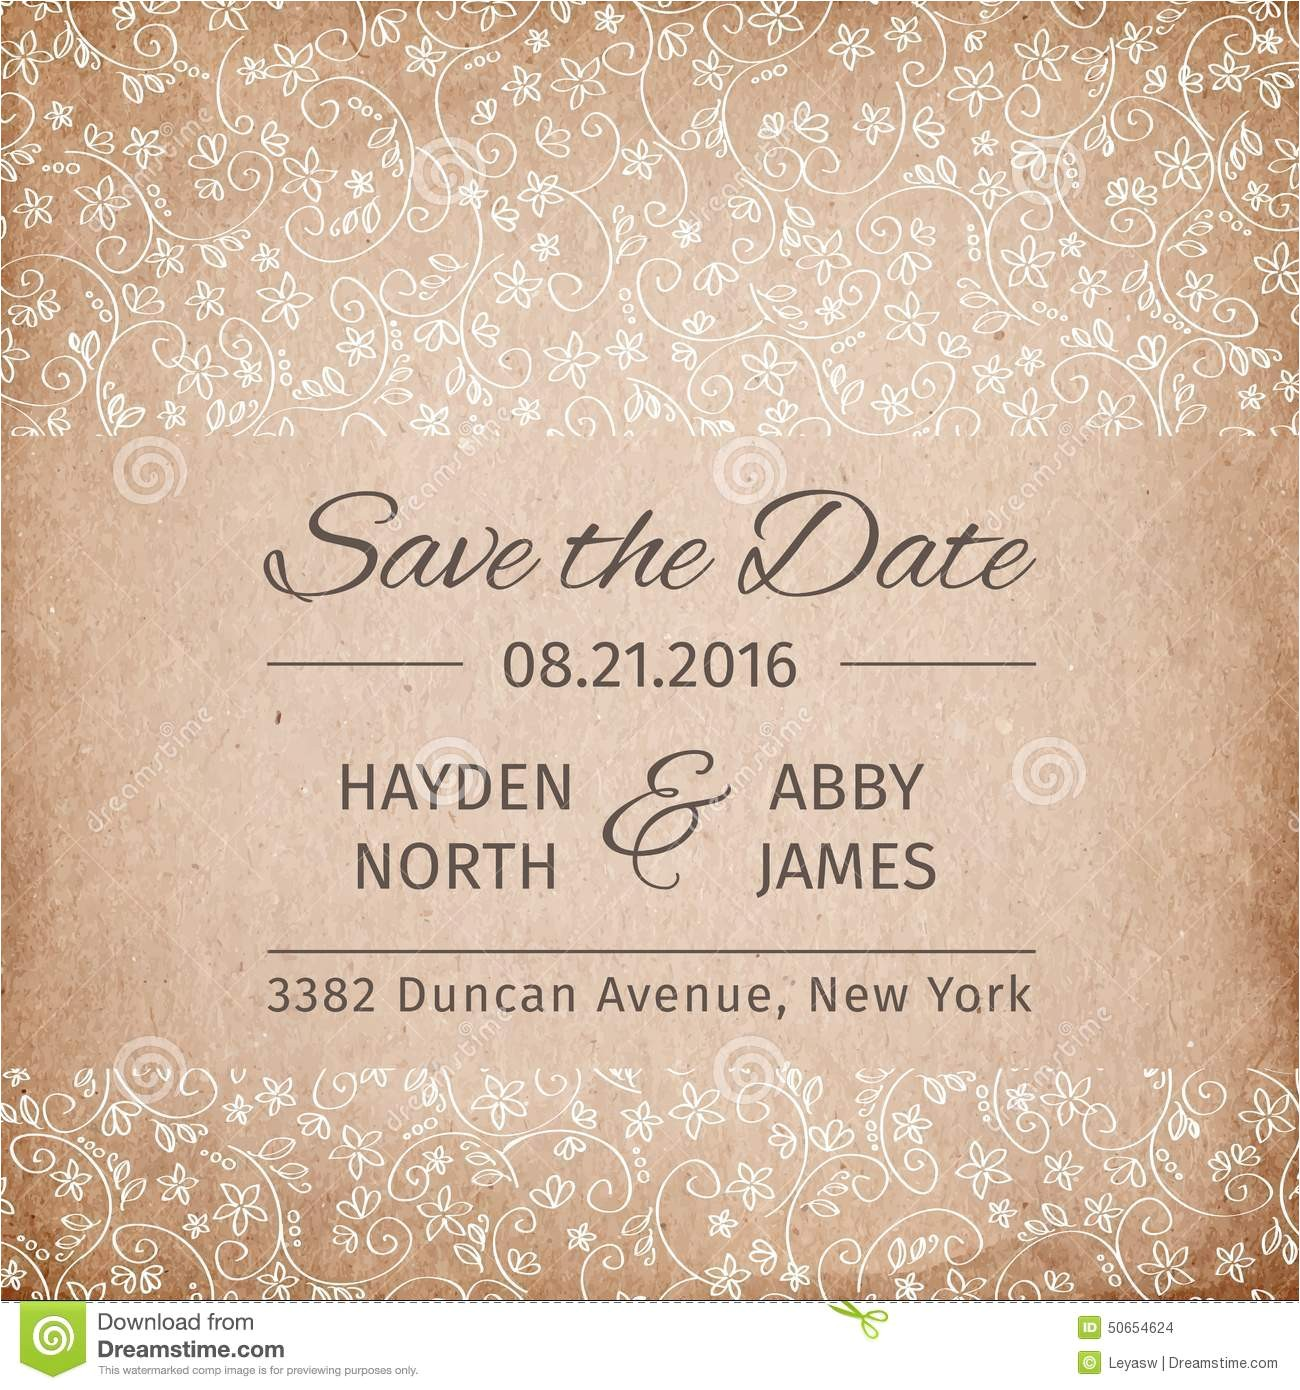 stock illustration save date wedding invitation template vintage paper texture vector illustration vectorillustration image50654624